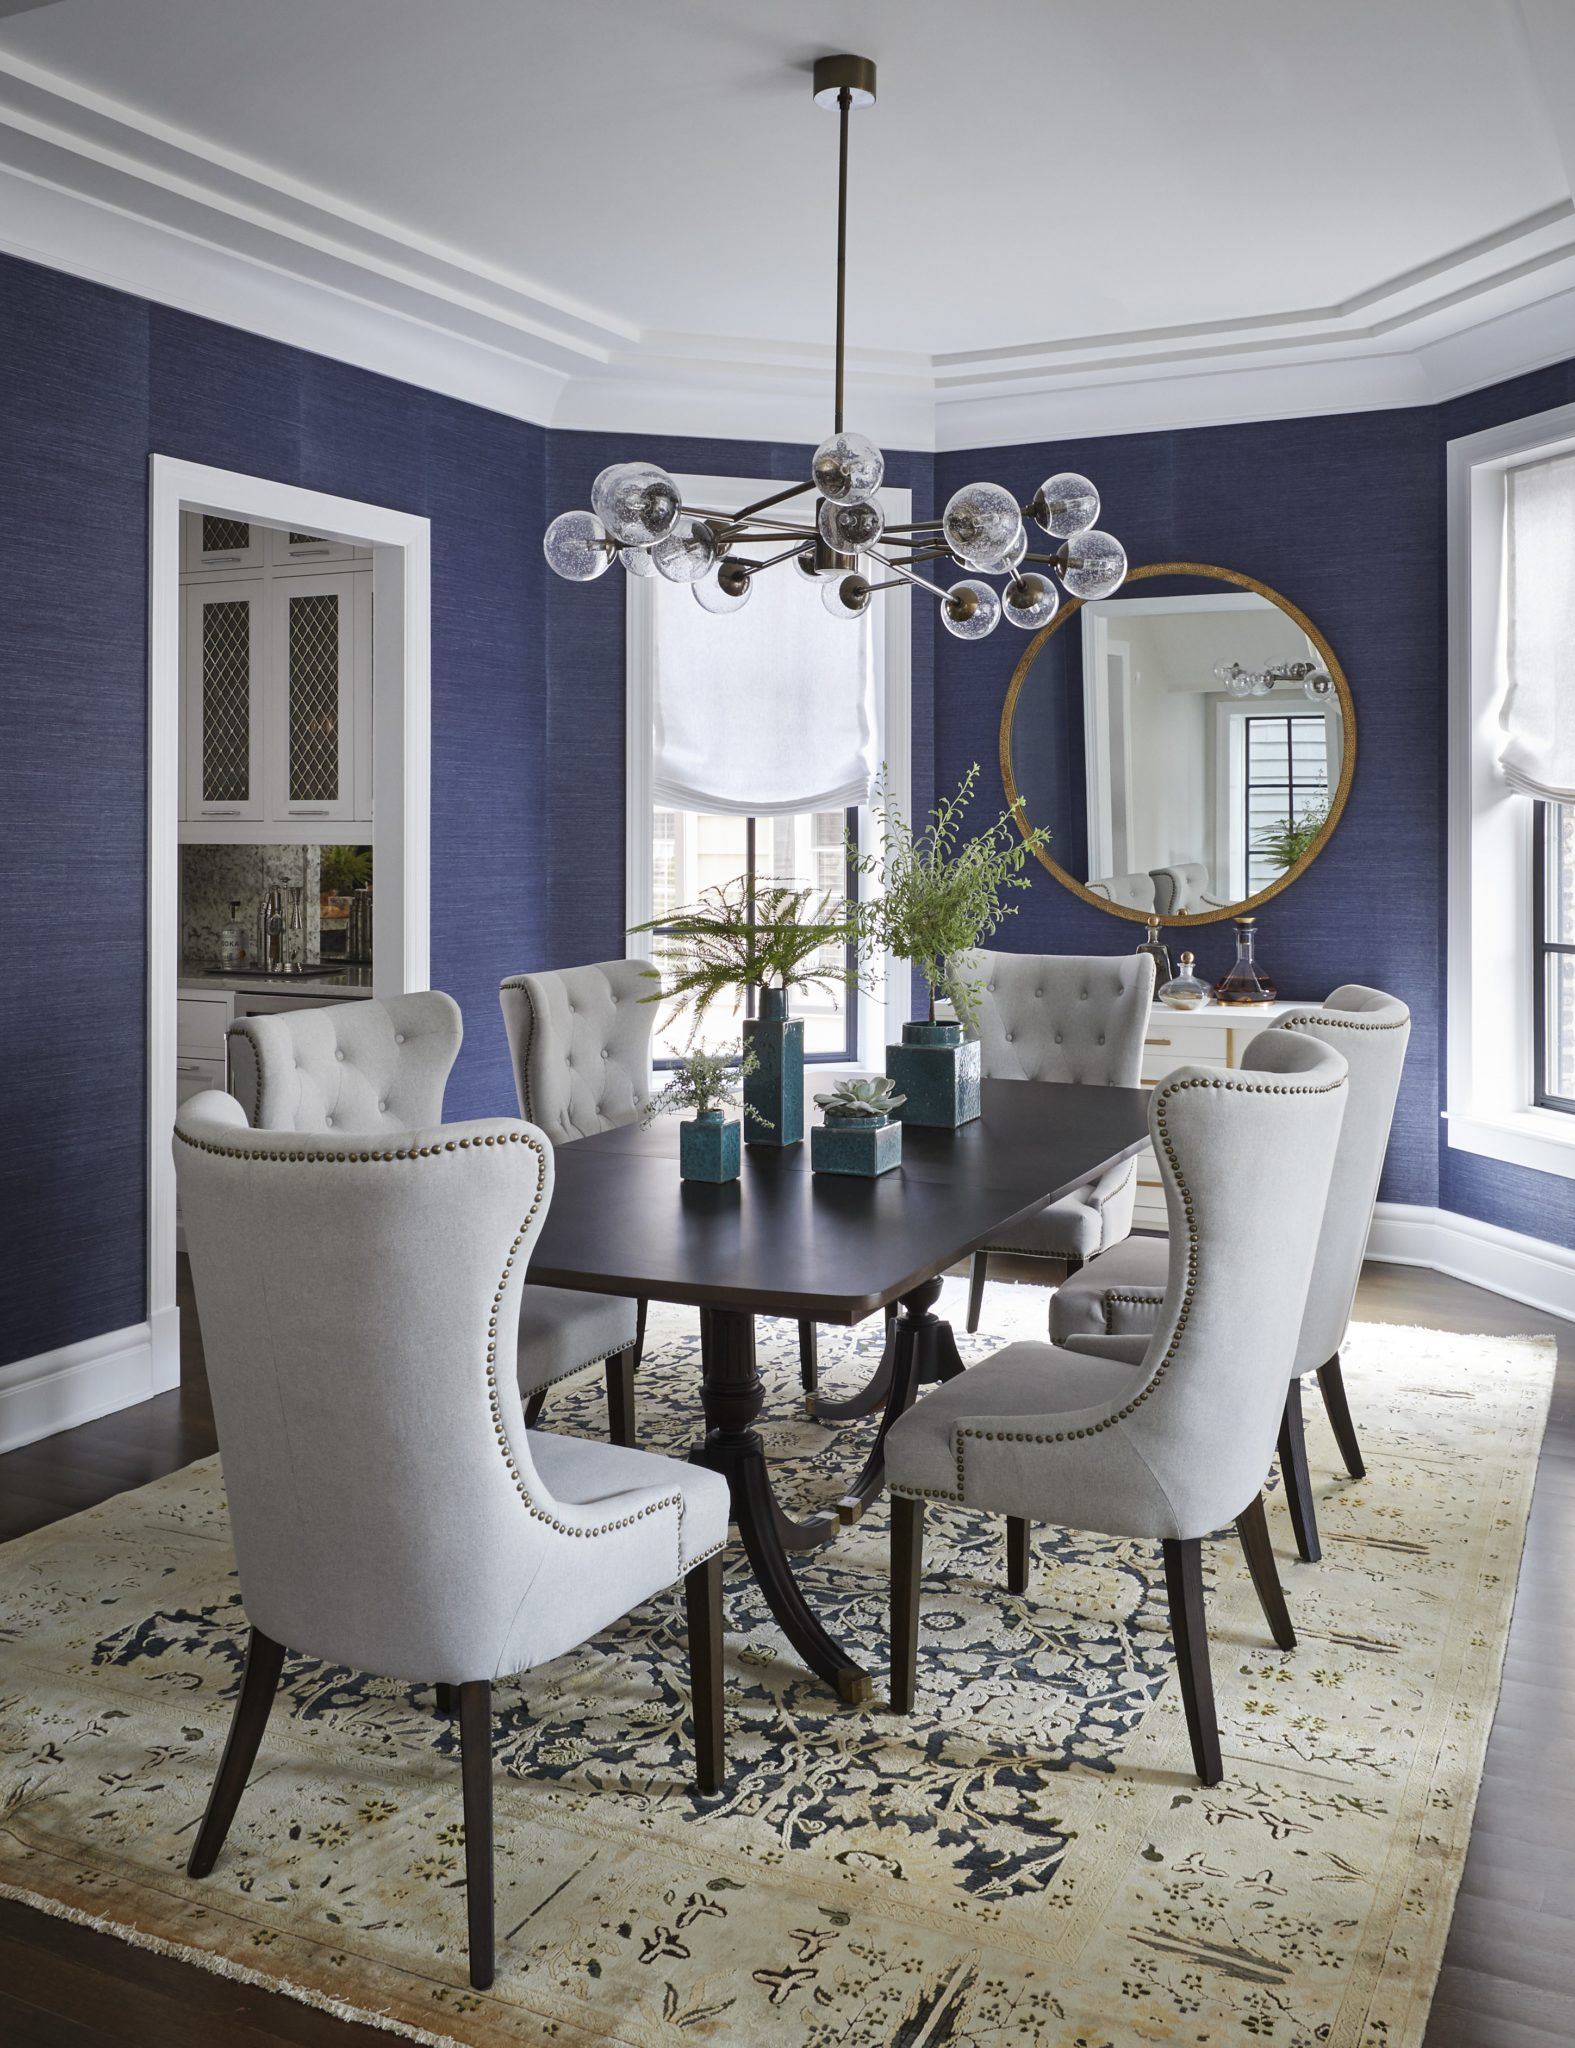 North Center Dining Room with Grasscloth Wallpaper by Amy Kartheiser Design